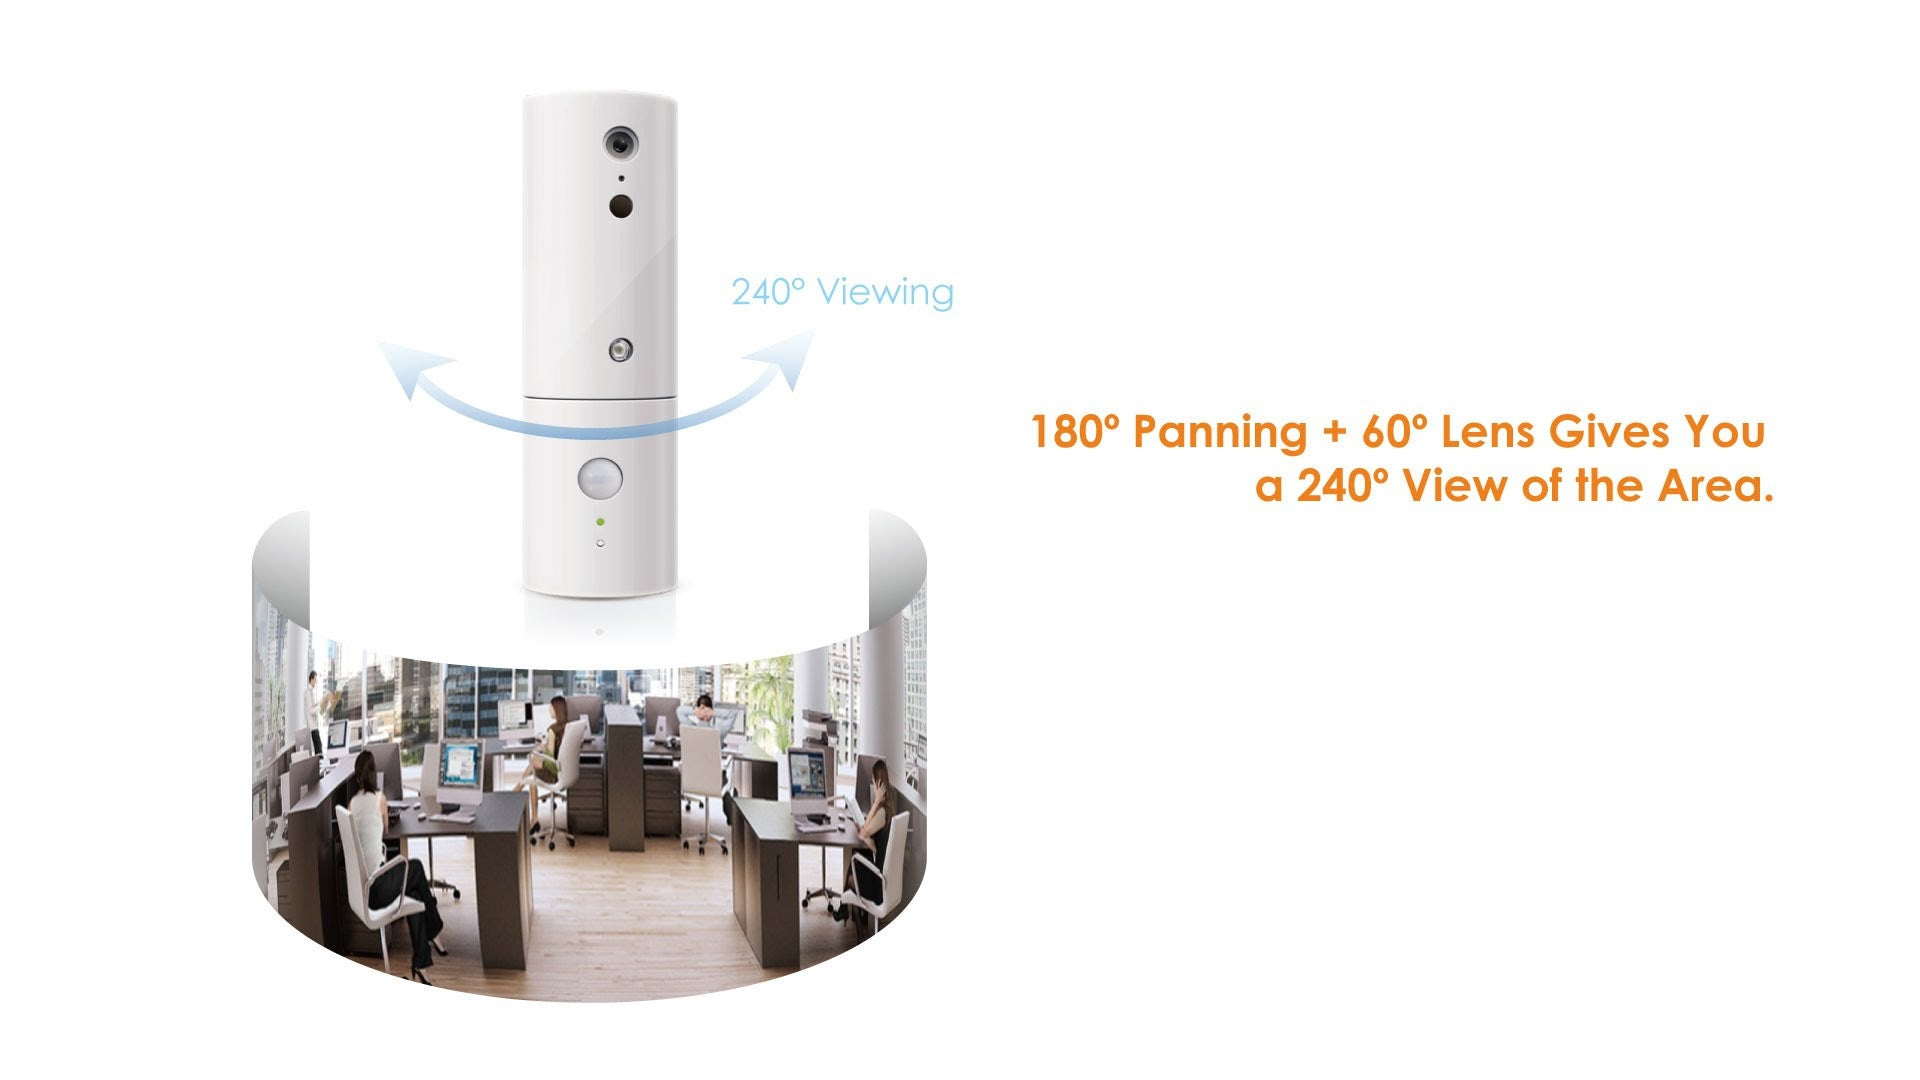 Amaryllo Robot Security iSensor HD Home Security Camera